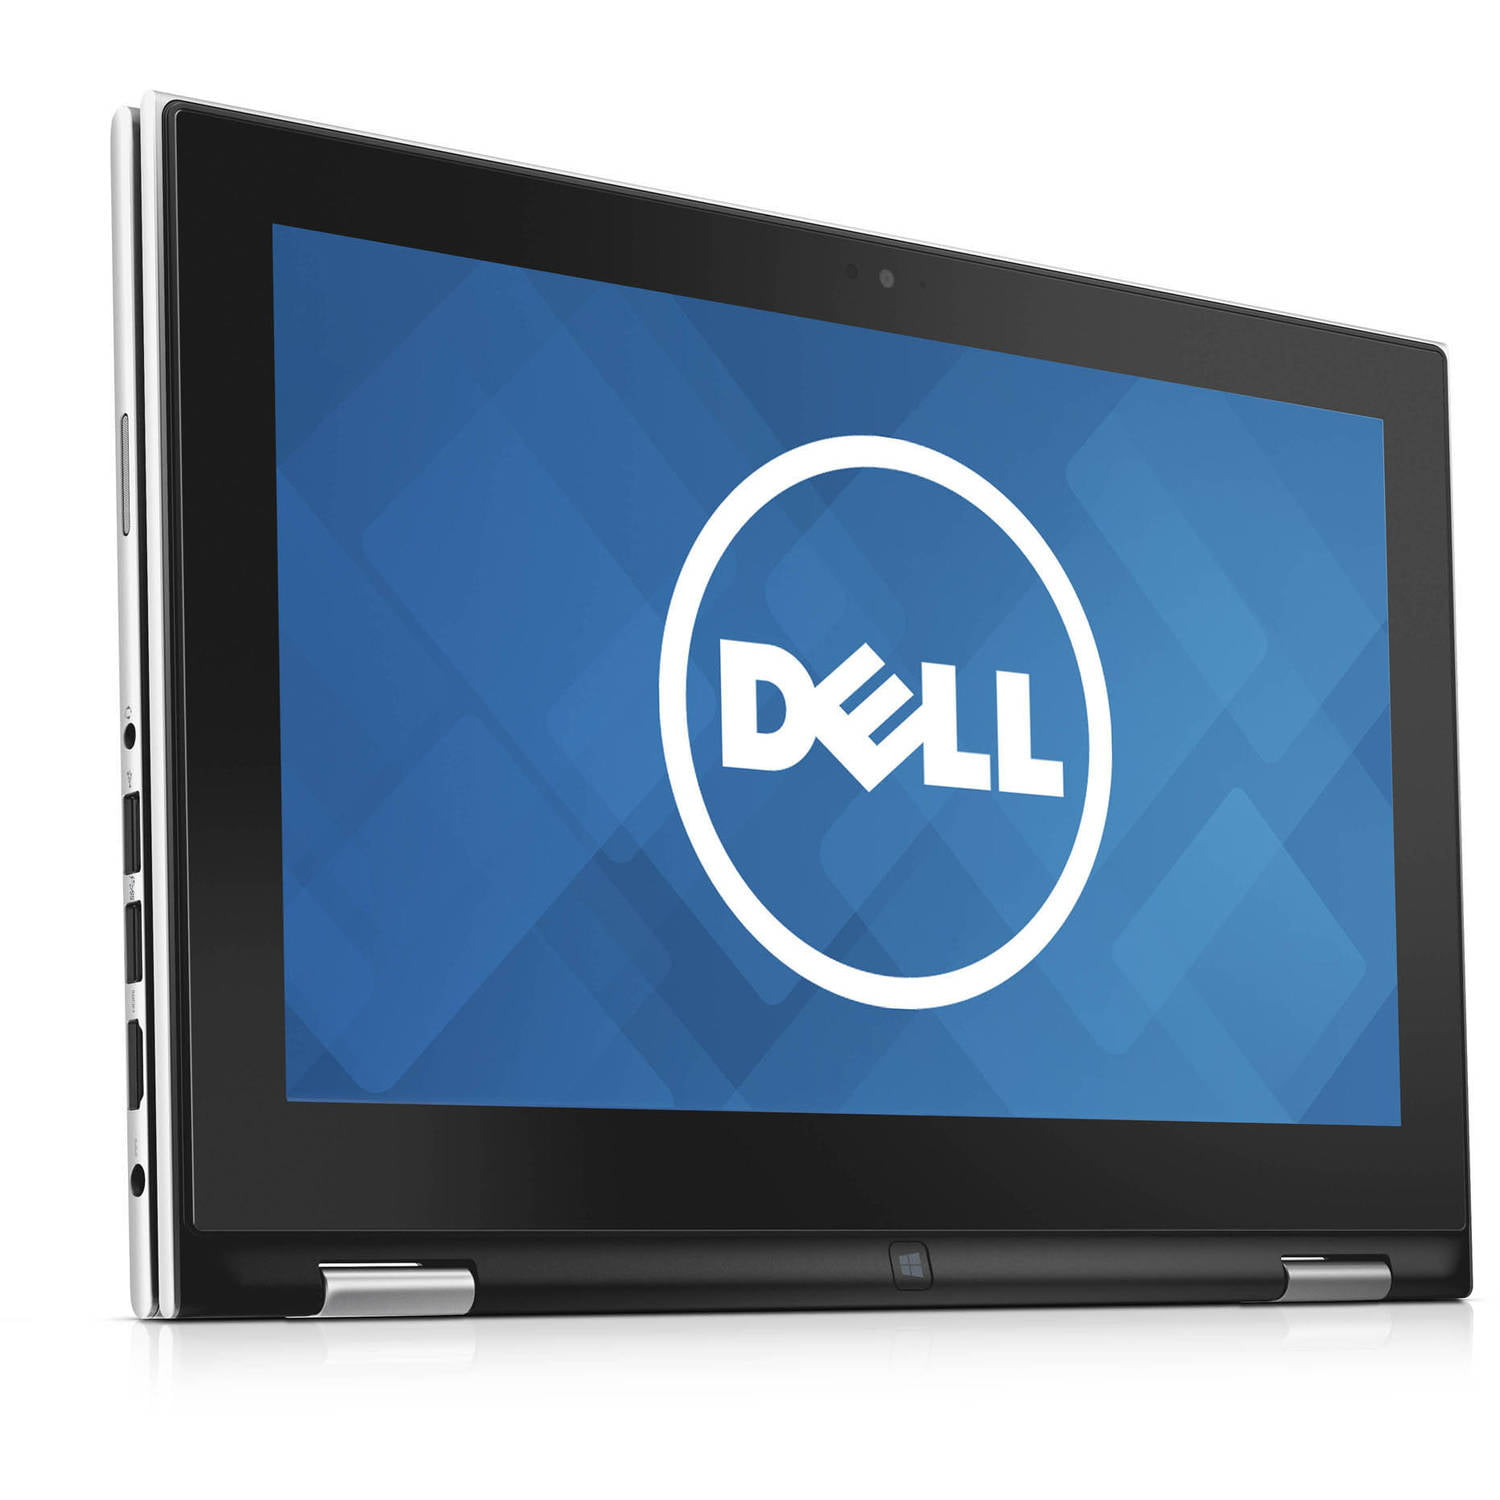 """Dell Silver 11.6"""" Inspiron 3157 touch screen 2-in-1 Convertible Laptop PC with Intel Celeron N3050 Processor, 2GB Memory,32GB eMMC Storage and Windows 10"""